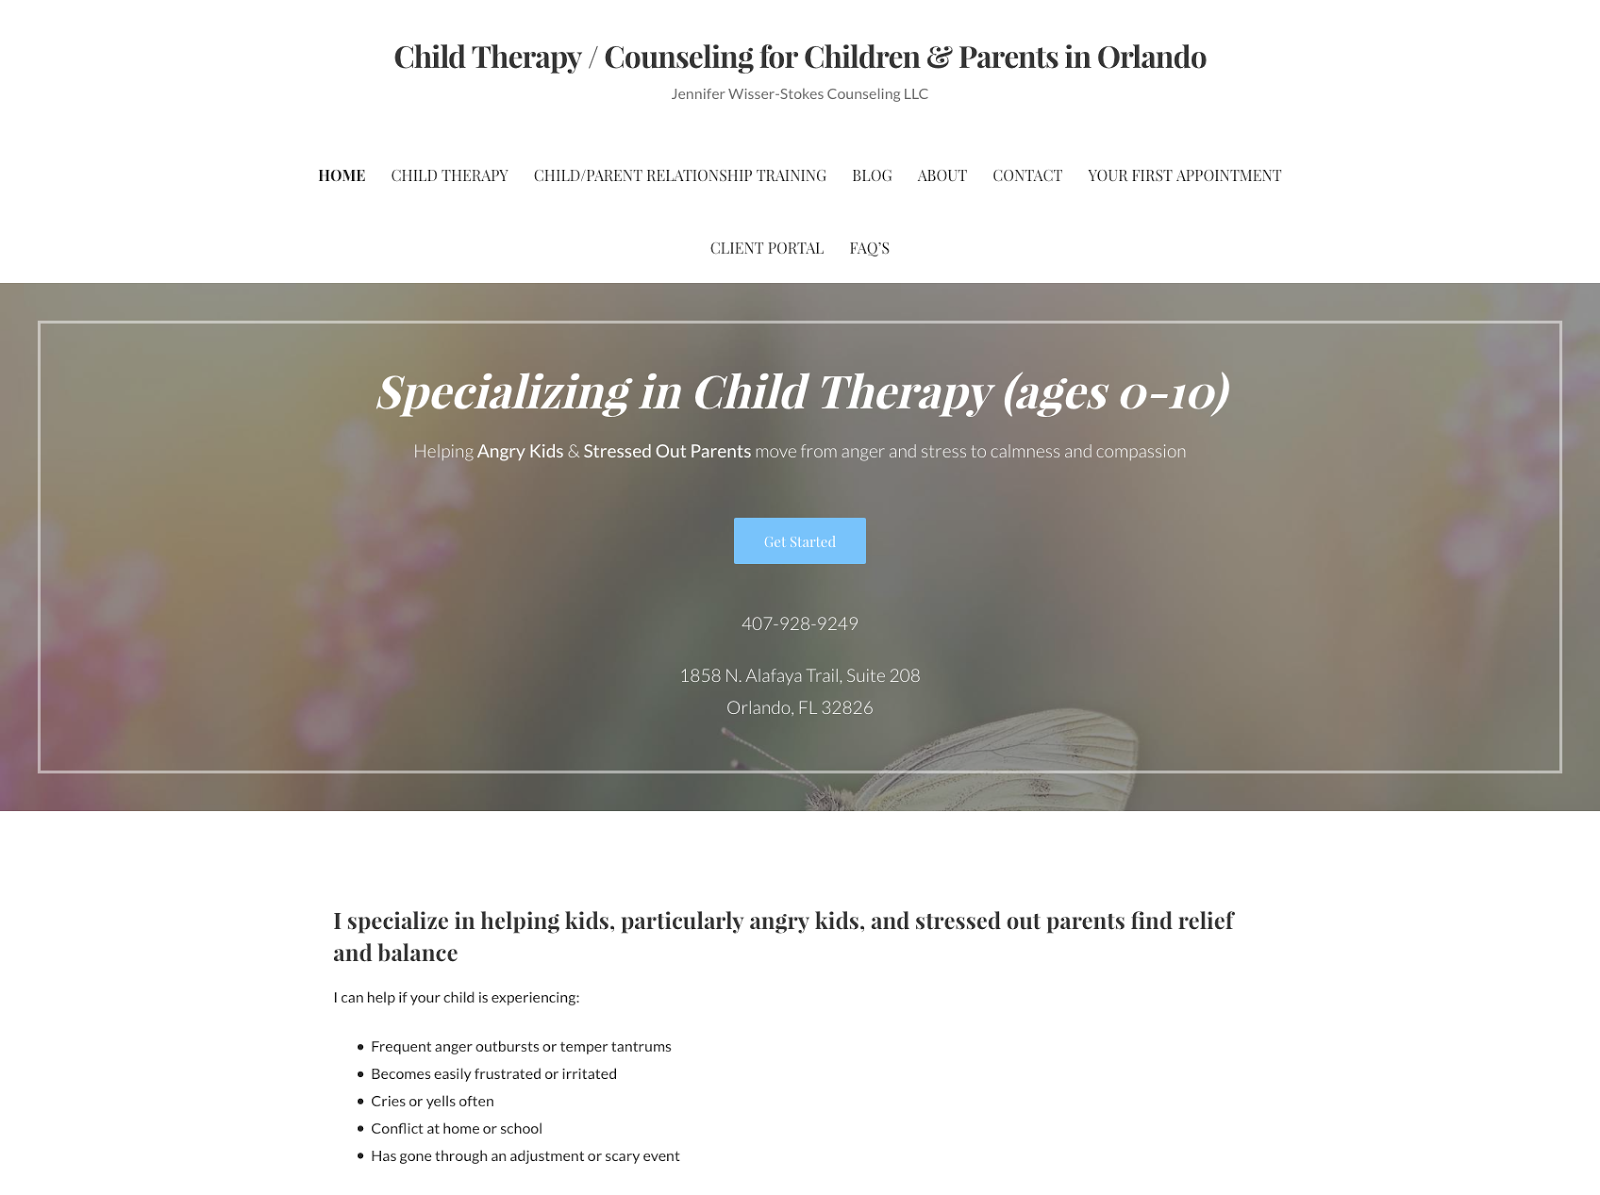 Child Therapy Counseling for Children Parents in Orlando Jennifer Wisser Stokes Counseling LLC